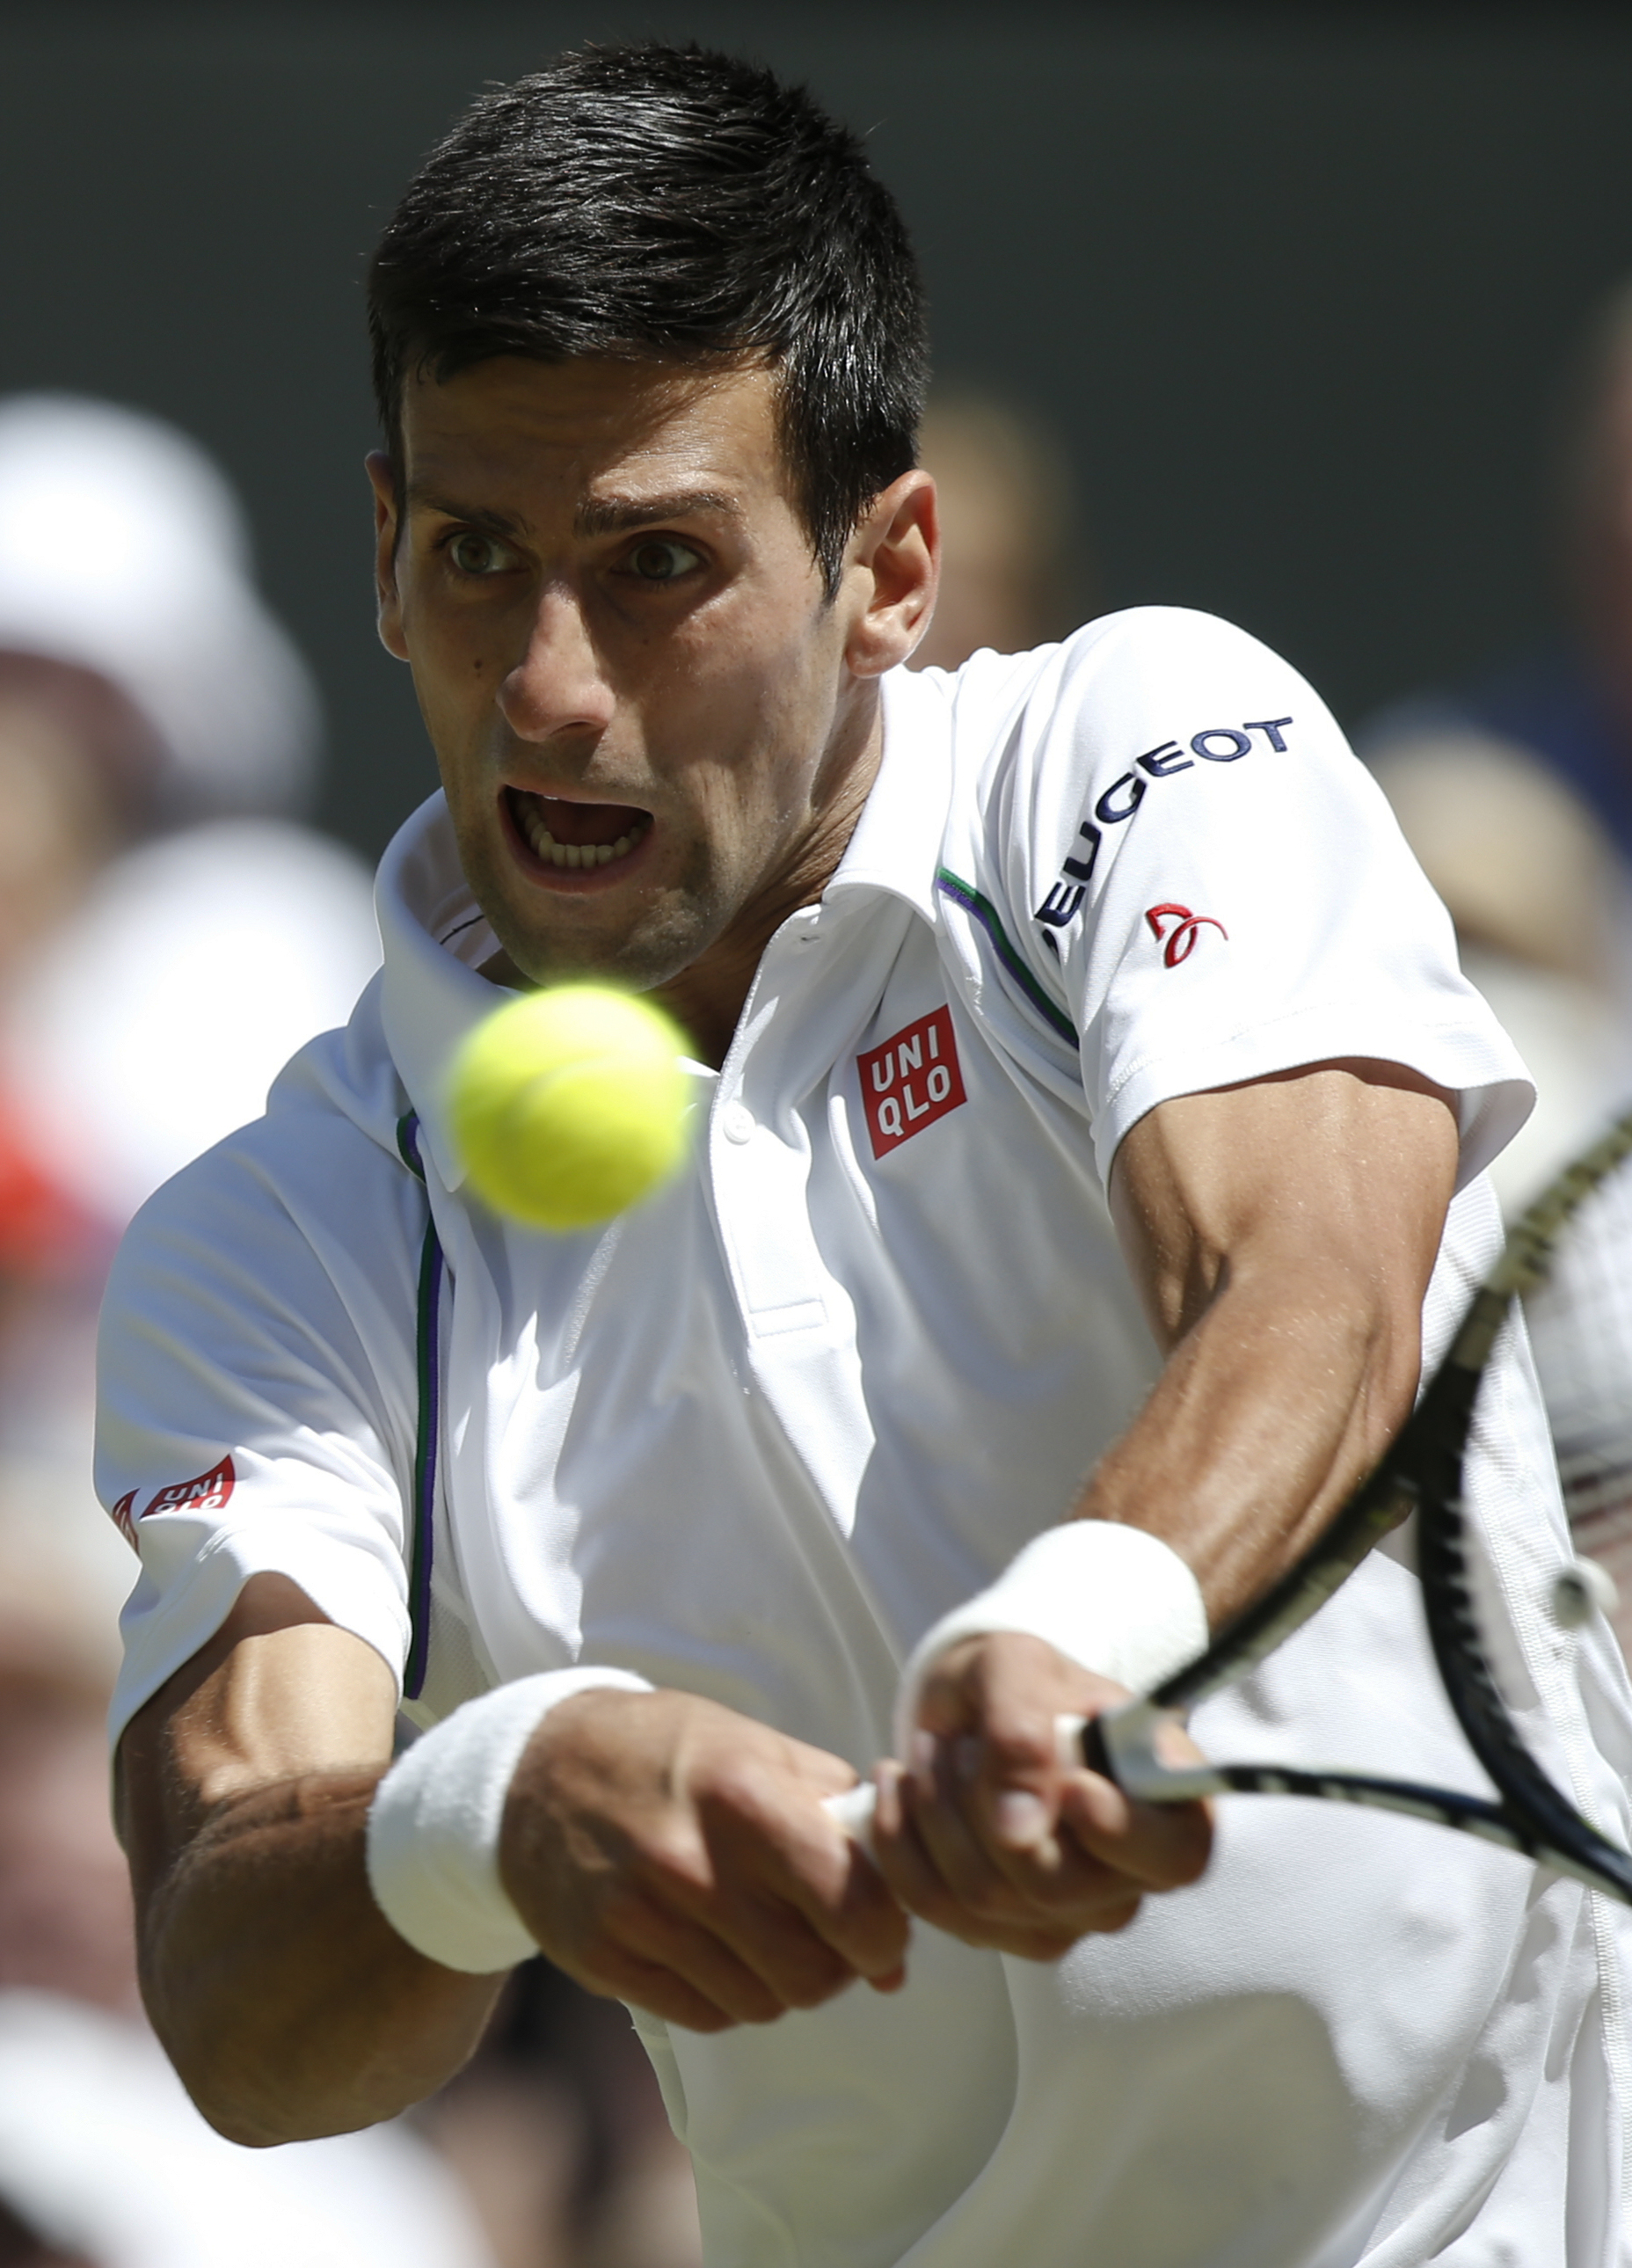 Novak Djokovic of Serbia returns a shot to Richard Gasquet of France, during the men's singles semifinal match at the All England Lawn Tennis Championships in Wimbledon, London, Friday July 10, 2015. (Adrian Dennis, Pool Photo via AP)